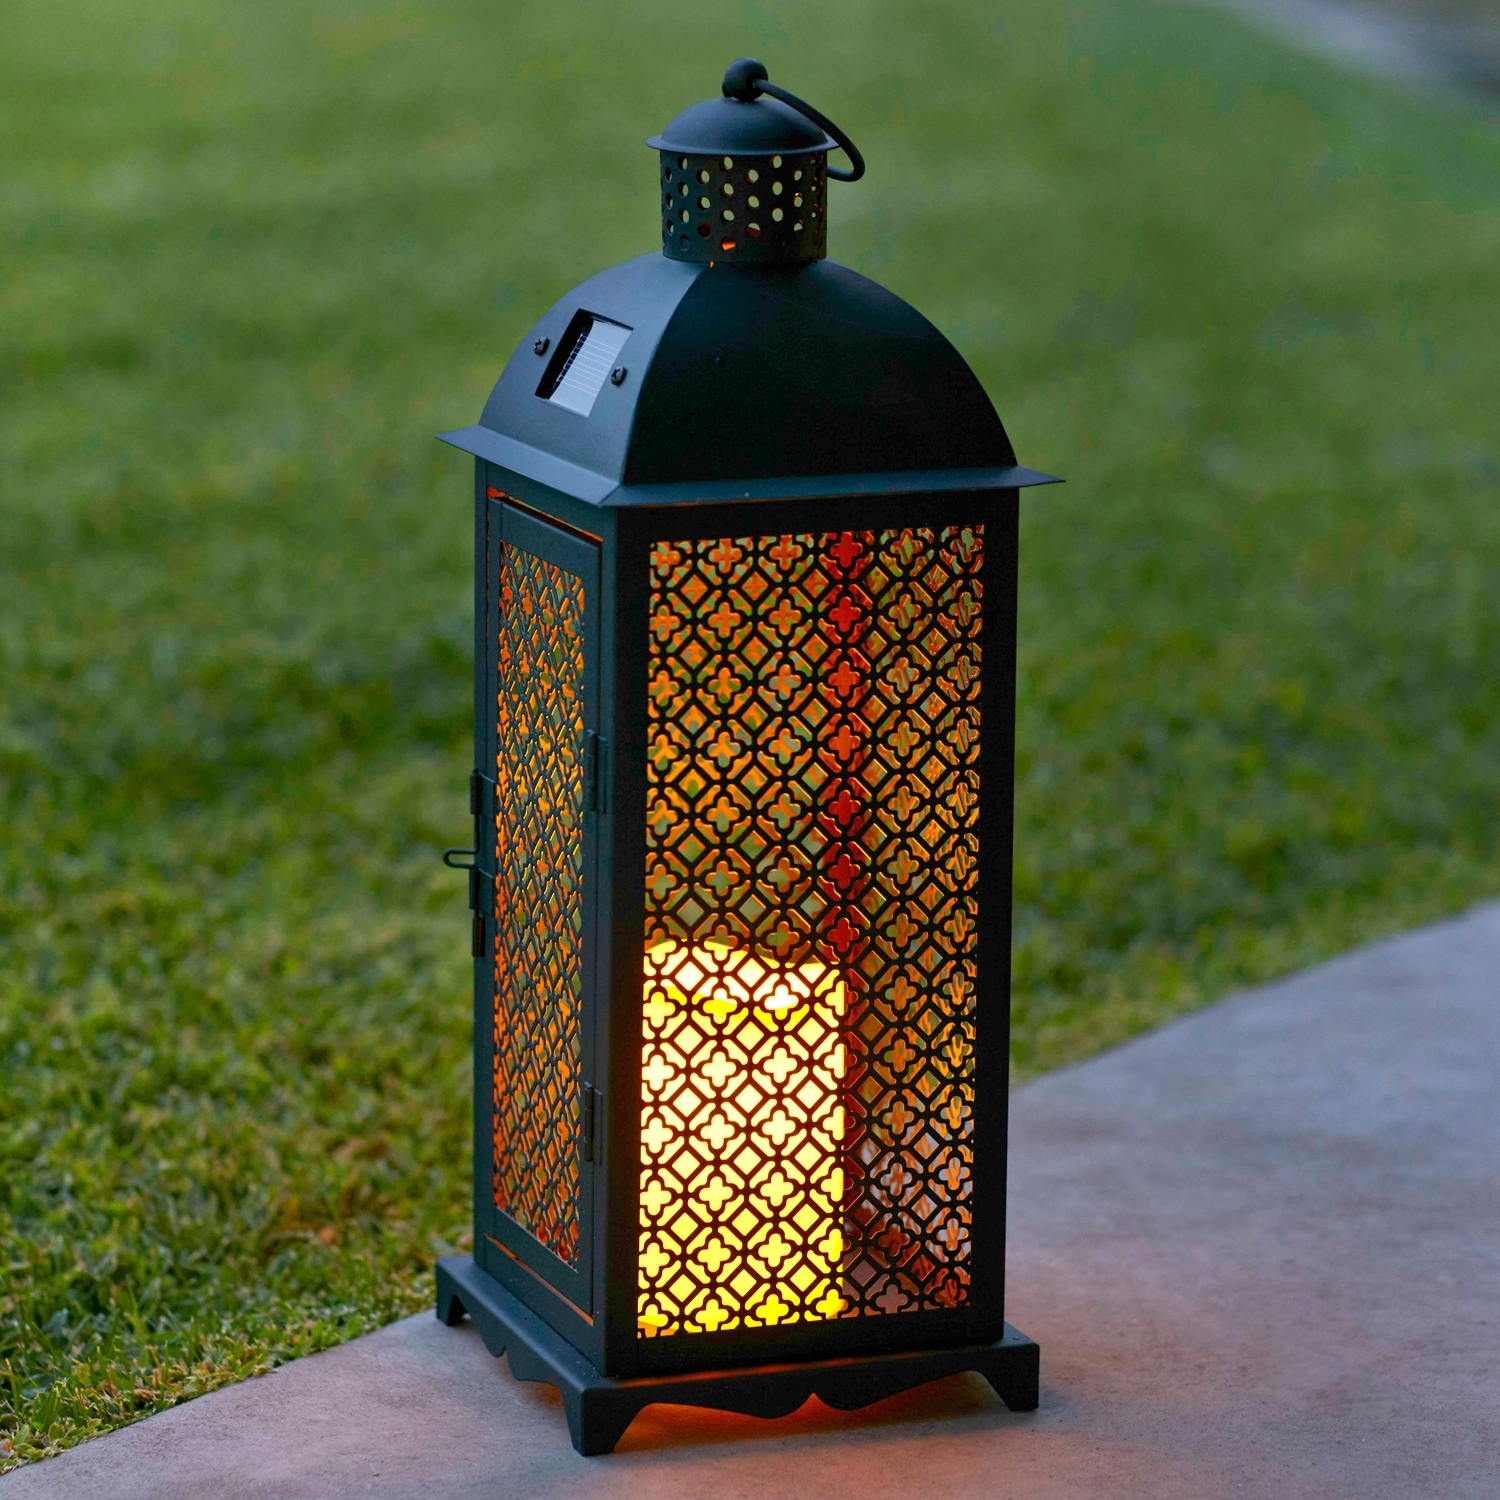 Most Popular Lights4Fun, Inc.: Moroccan Solar Powered Led Garden Flameless Candle Regarding Moroccan Outdoor Electric Lanterns (Gallery 6 of 20)